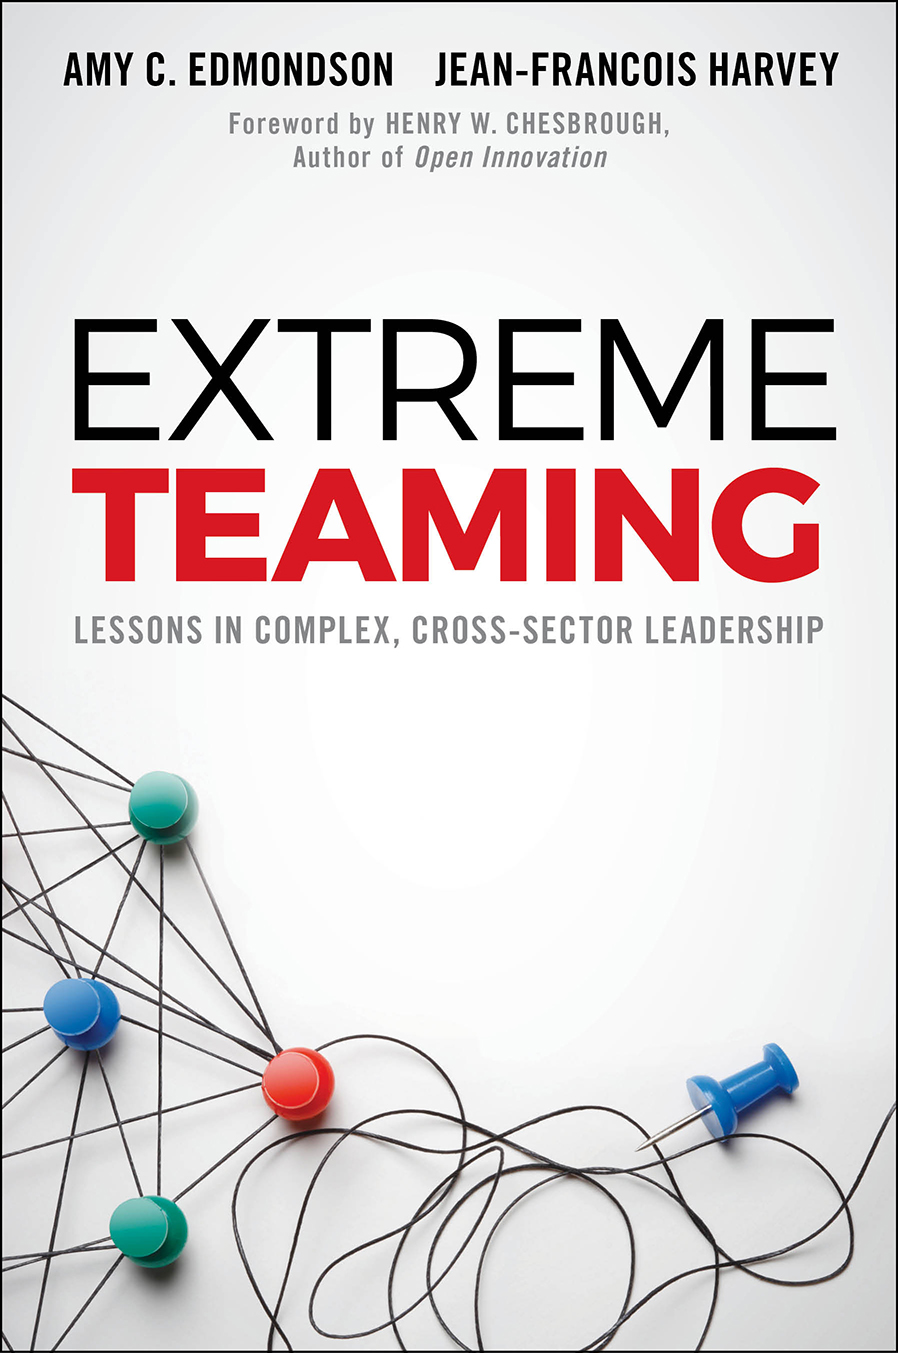 Book cover for Extreme Teaming:  Lessons in Complex, Cross-Sector Leadership a book by Amy C. Edmondson, Jean-François  Harvey, Henry W. Chesbrough